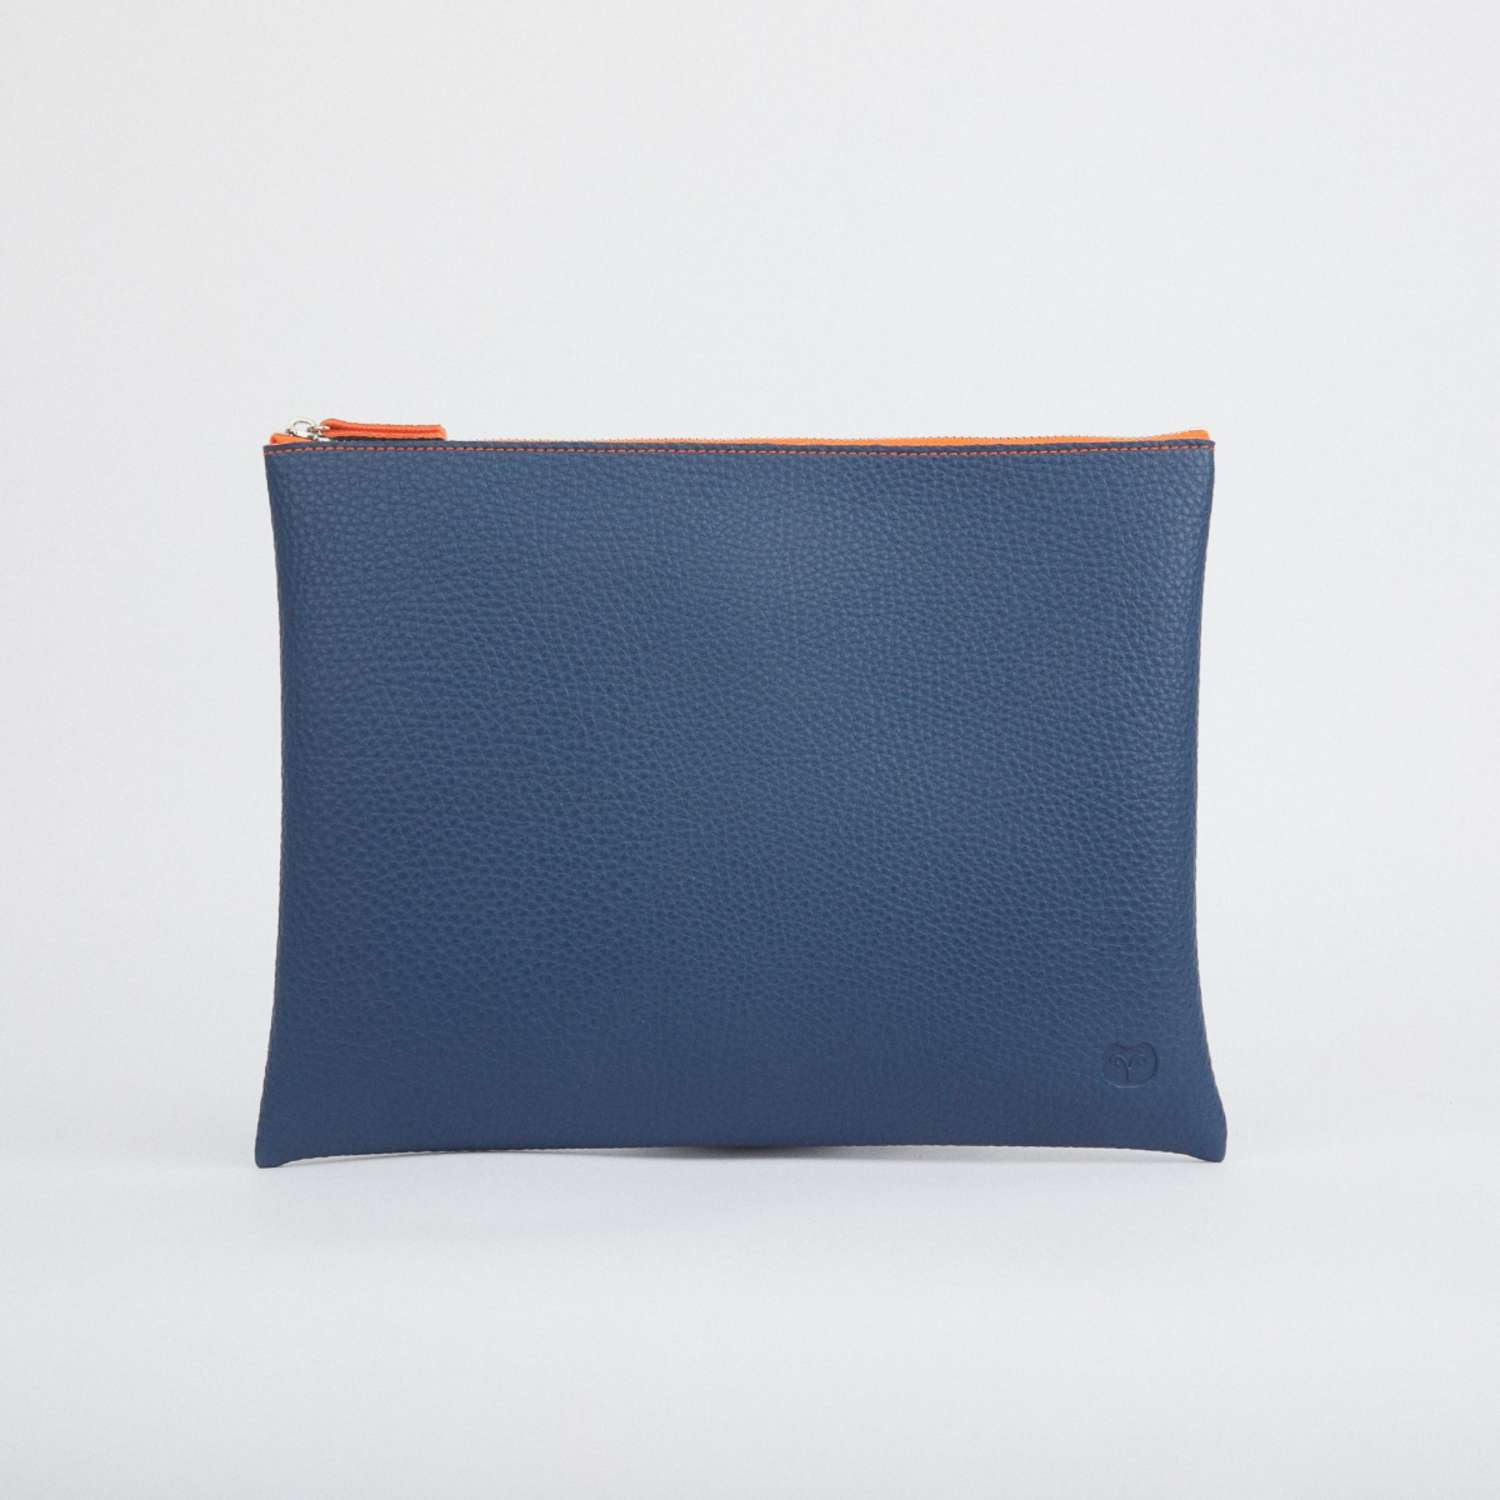 Large pouch - navy